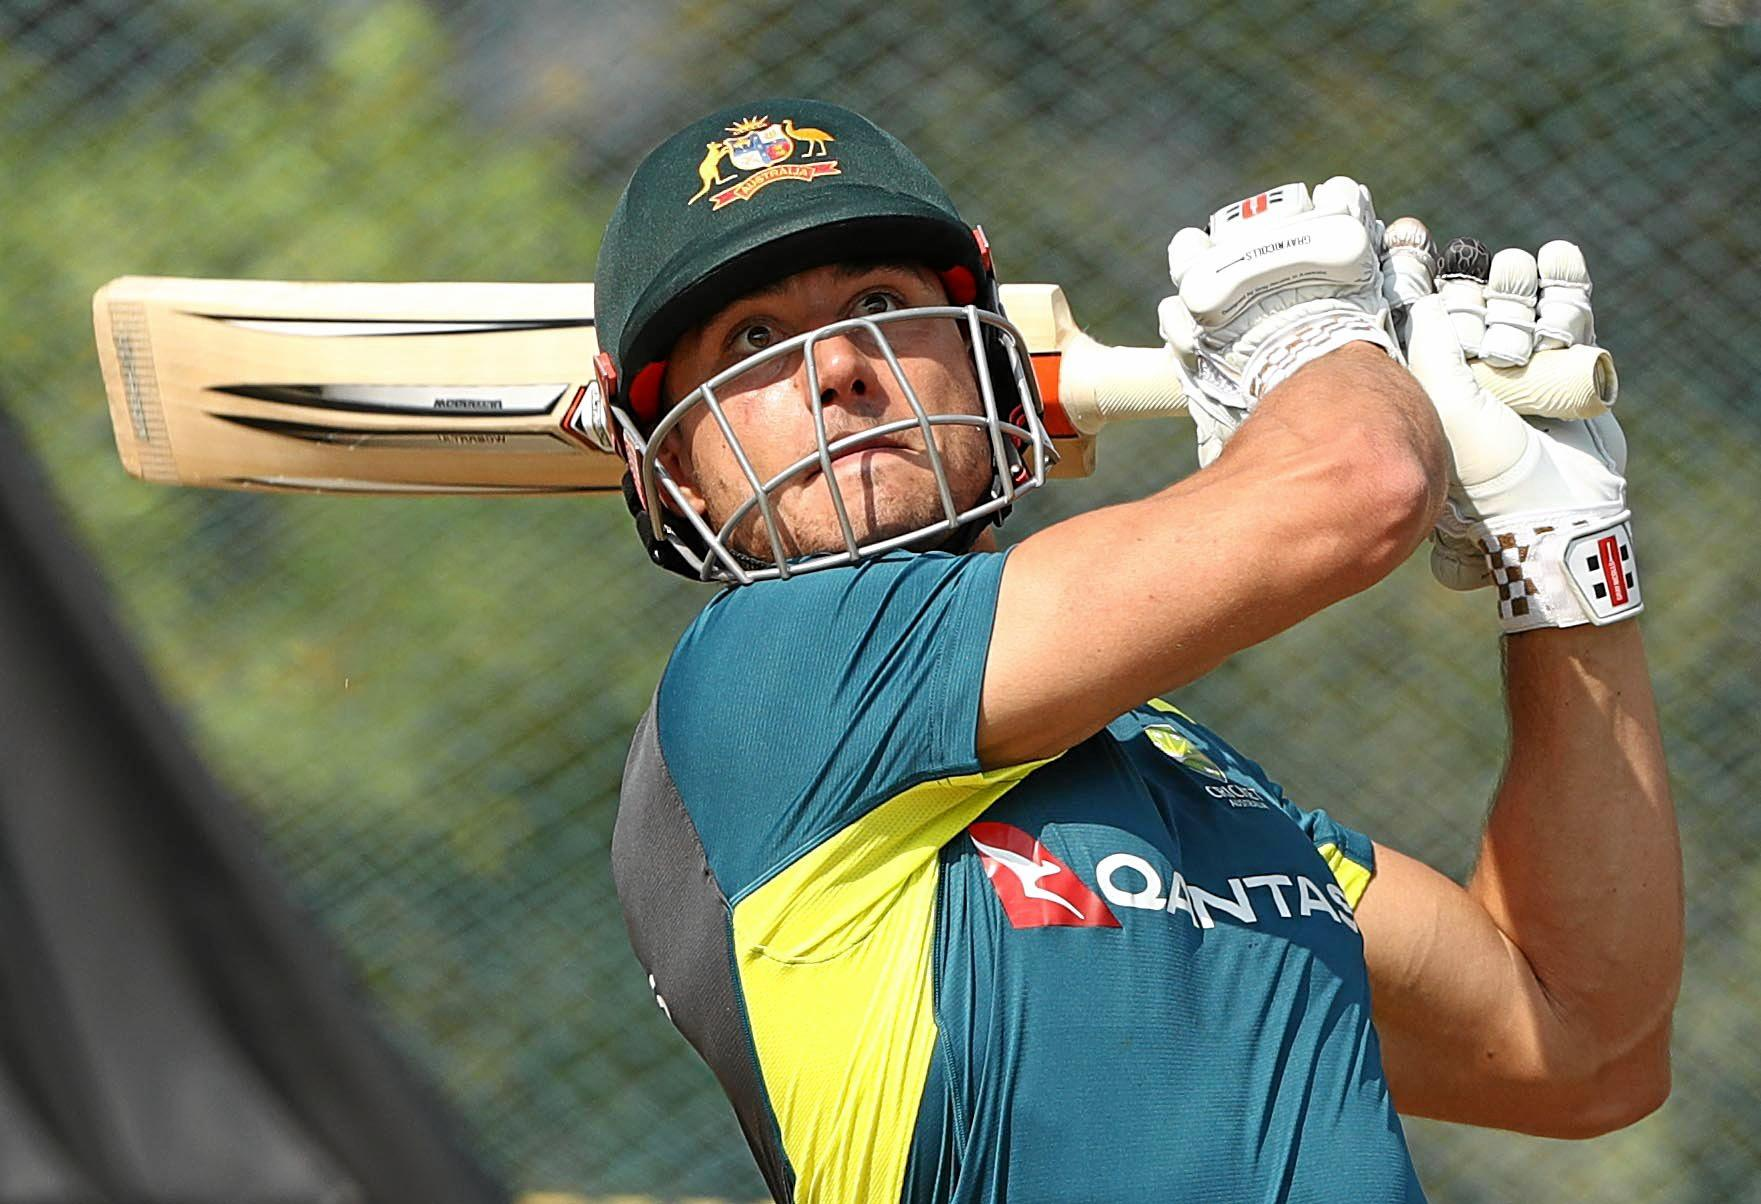 VISAKHAPATNAM, INDIA - FEBRUARY 23: Marcus Stoinis of Australia bats during the Australian practice session at ACA-VDCA Stadium ahead of game one in the T20I Series between India and Australia on February 23, 2019 in Visakhapatnam, India. (Photo by Robert Cianflone/Getty Images)